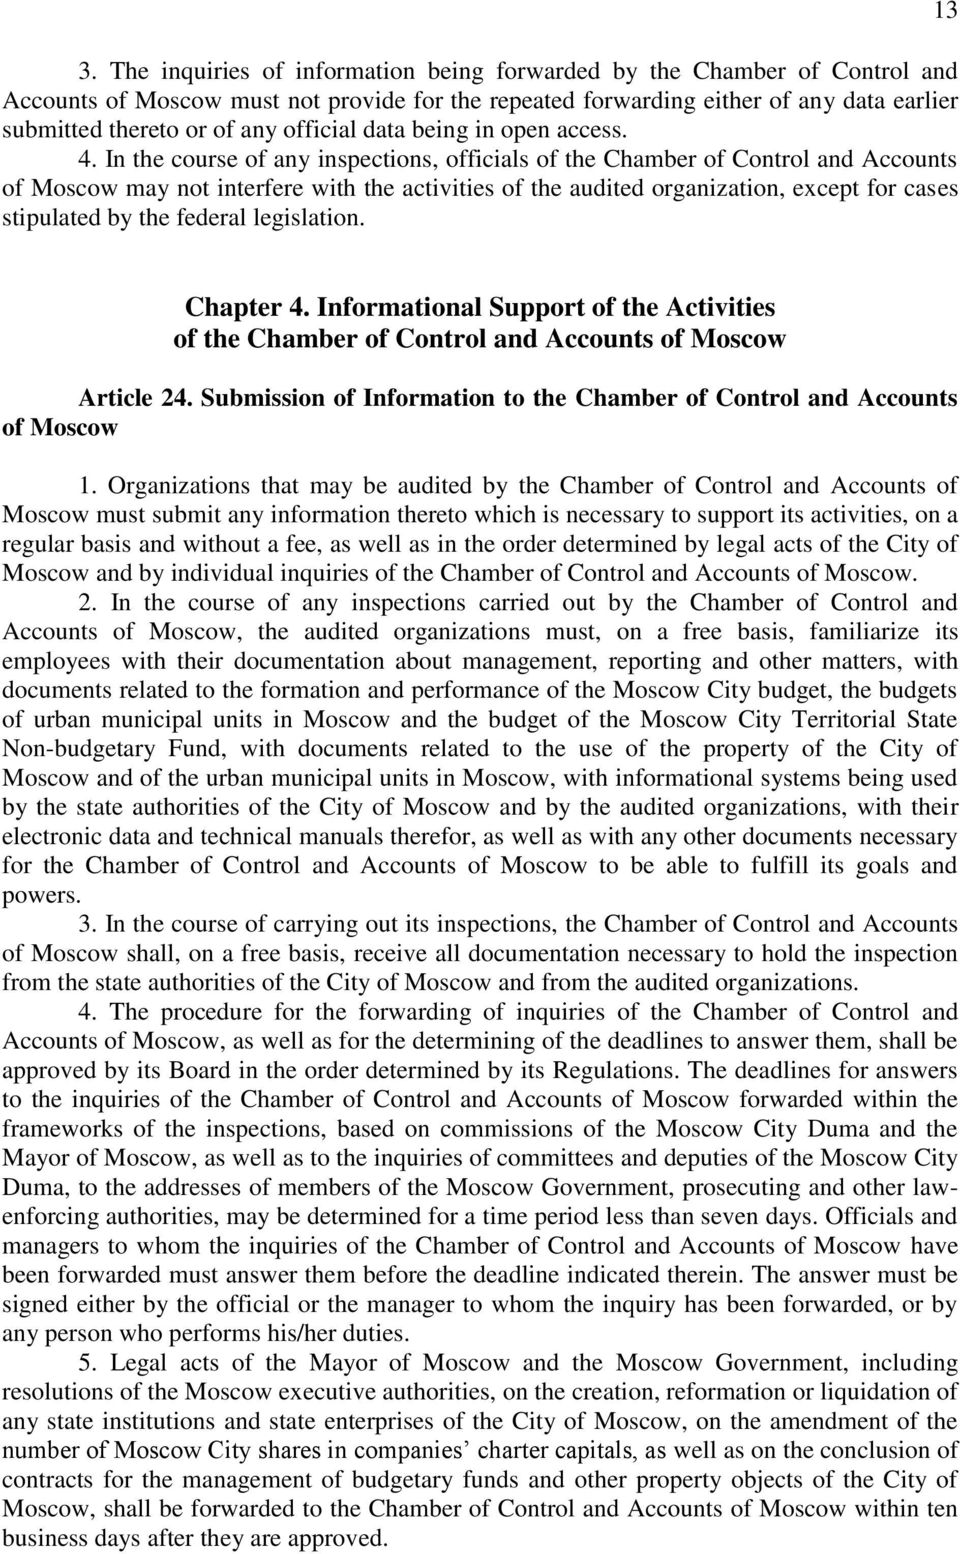 In the course of any inspections, officials of the Chamber of Control and Accounts of Moscow may not interfere with the activities of the audited organization, except for cases stipulated by the